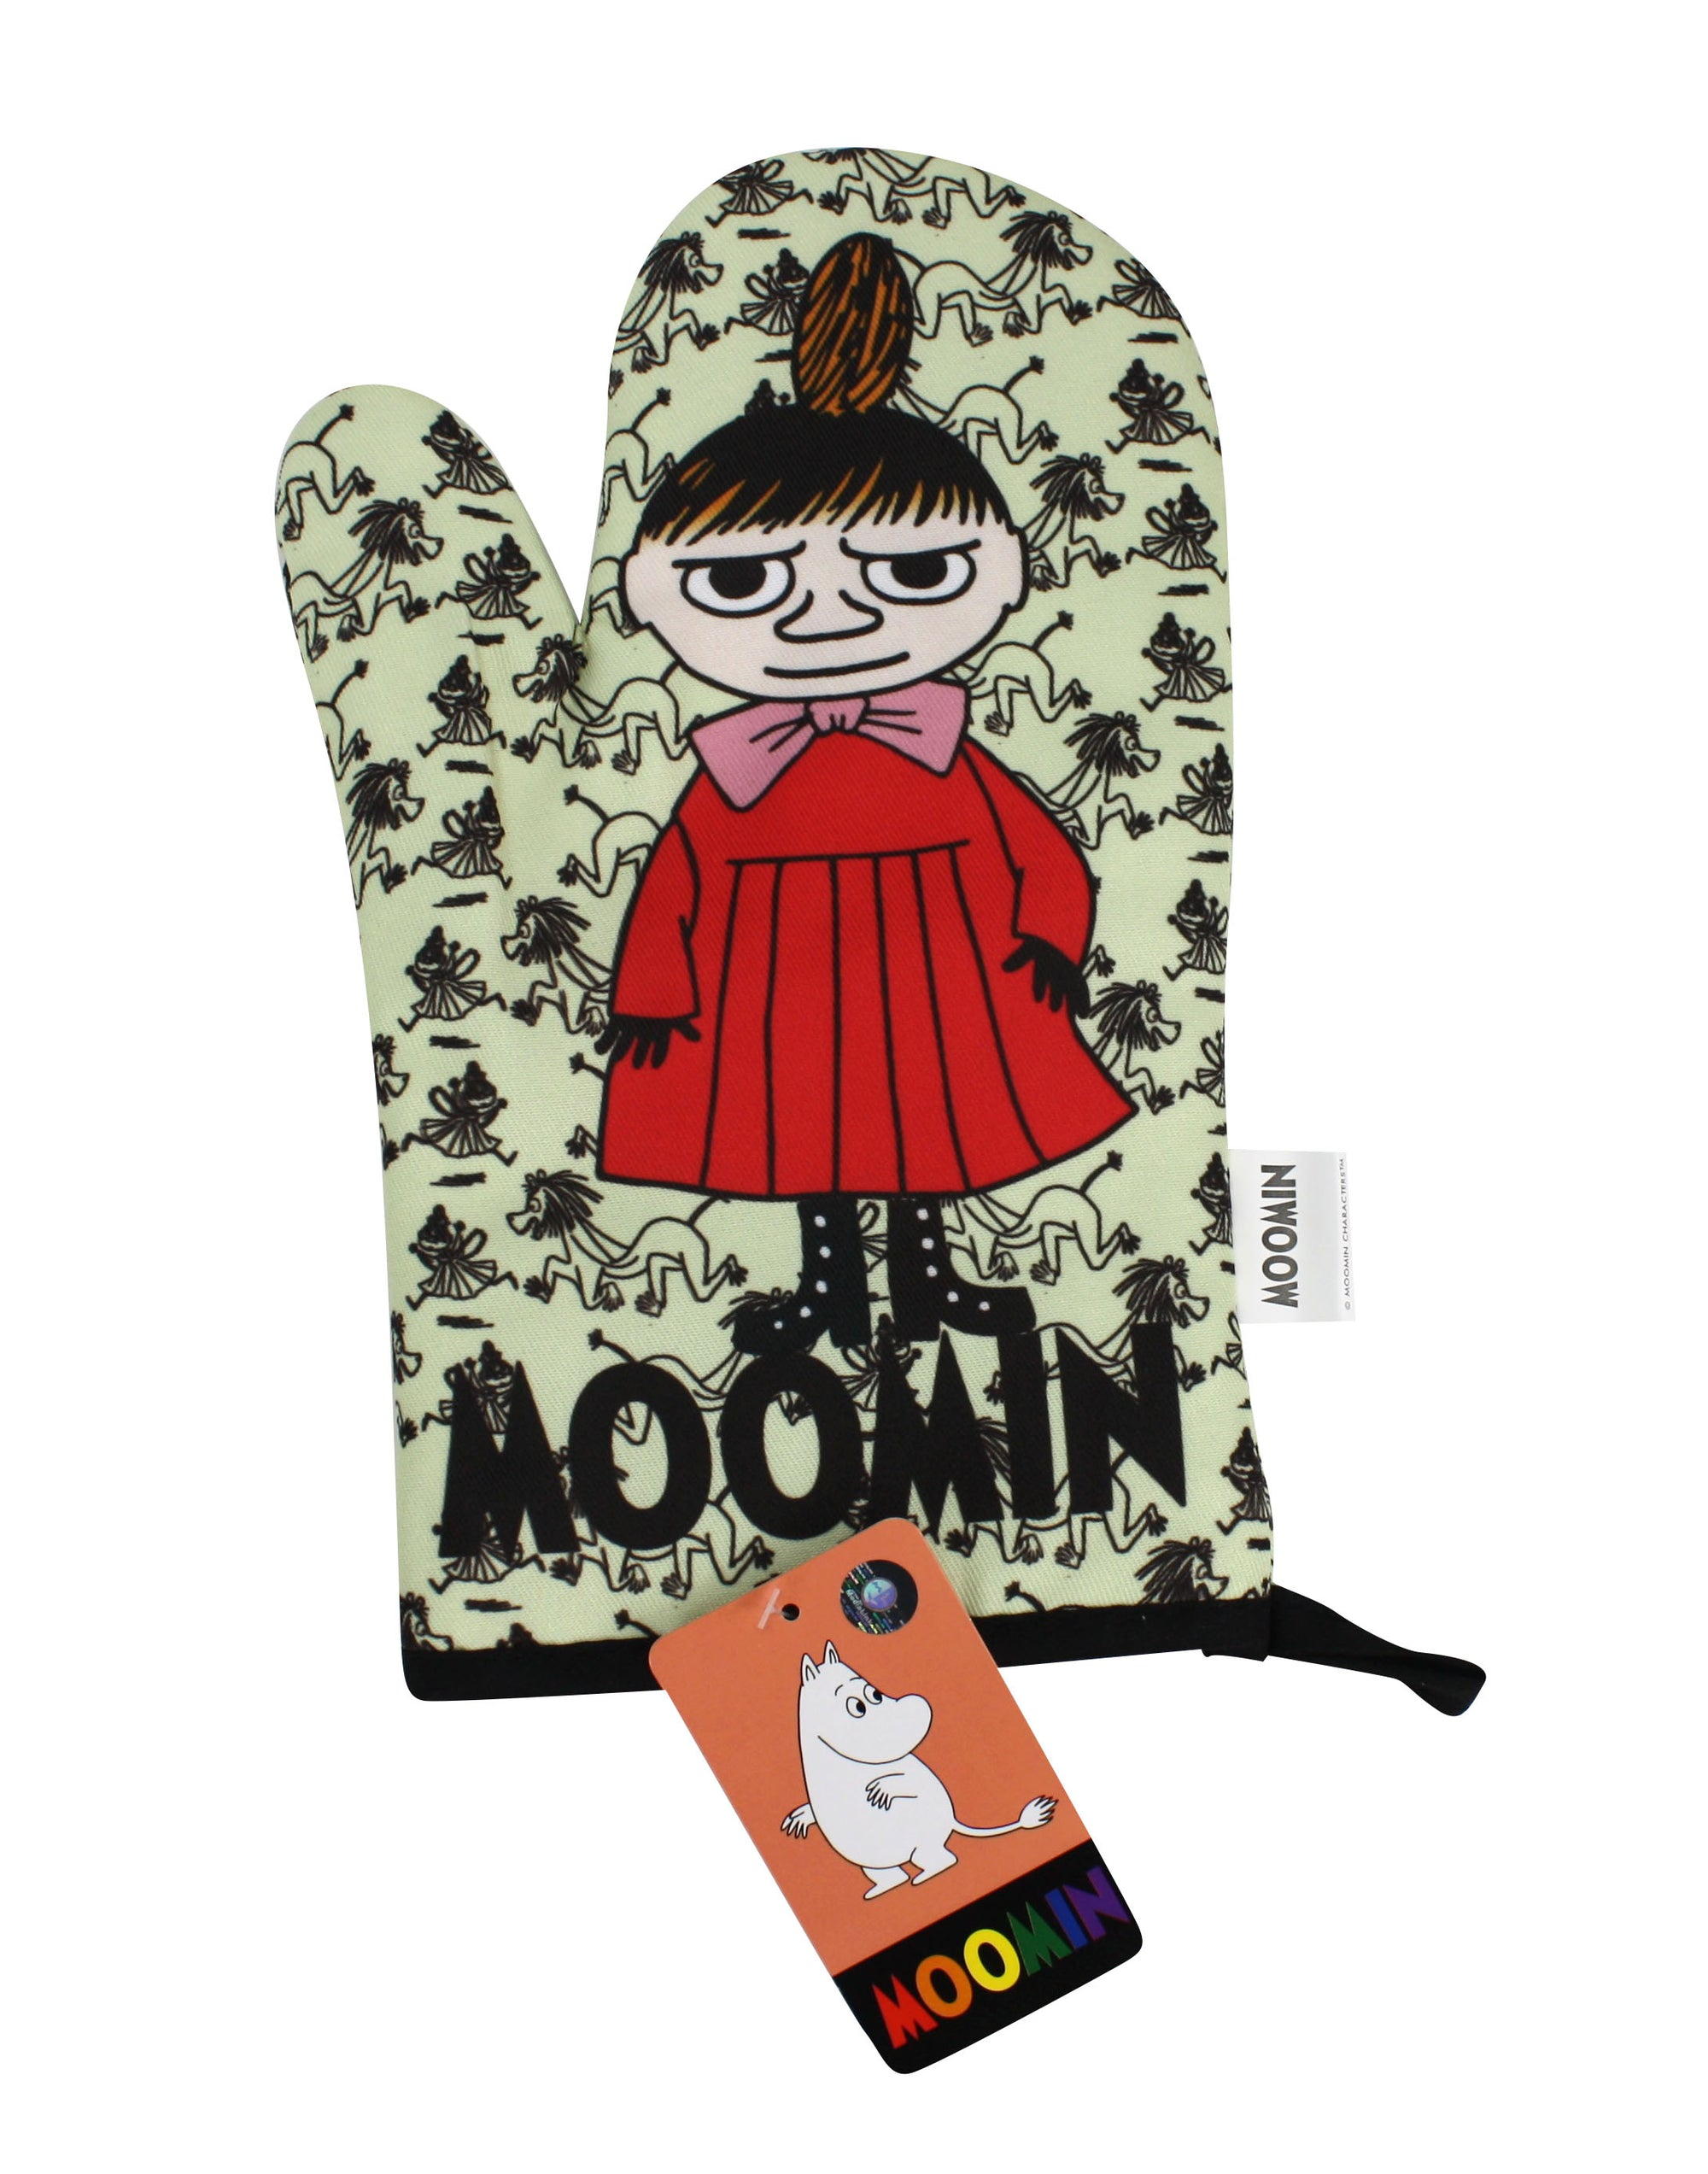 Moomin Oven Glove, Oven Mitt, Little My - farangshop-co